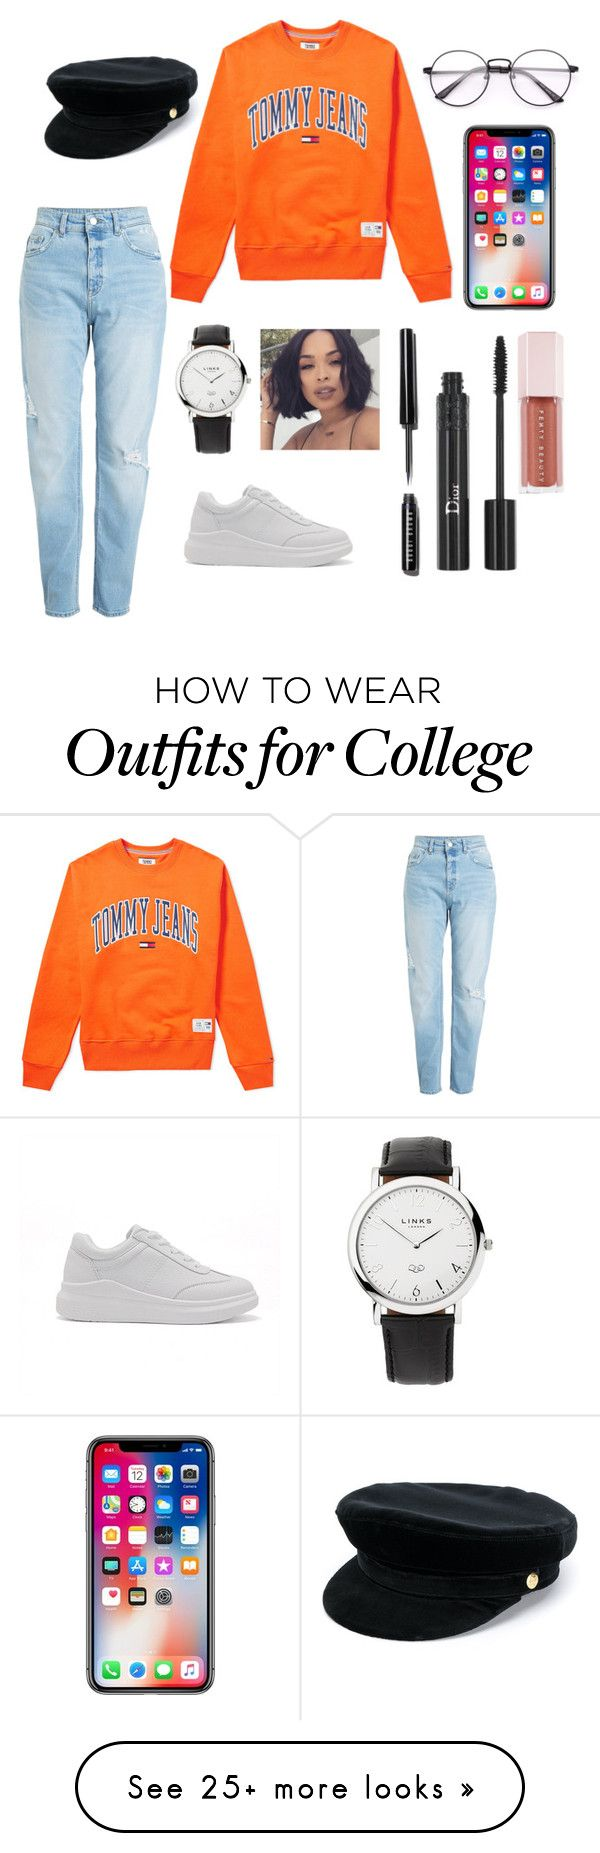 """"""""""" by ariya101 on Polyvore featuring Tommy Hilfiger, Manokhi, Links of London, Bobbi Brown Cosmetics, Christian Dior and Puma"""